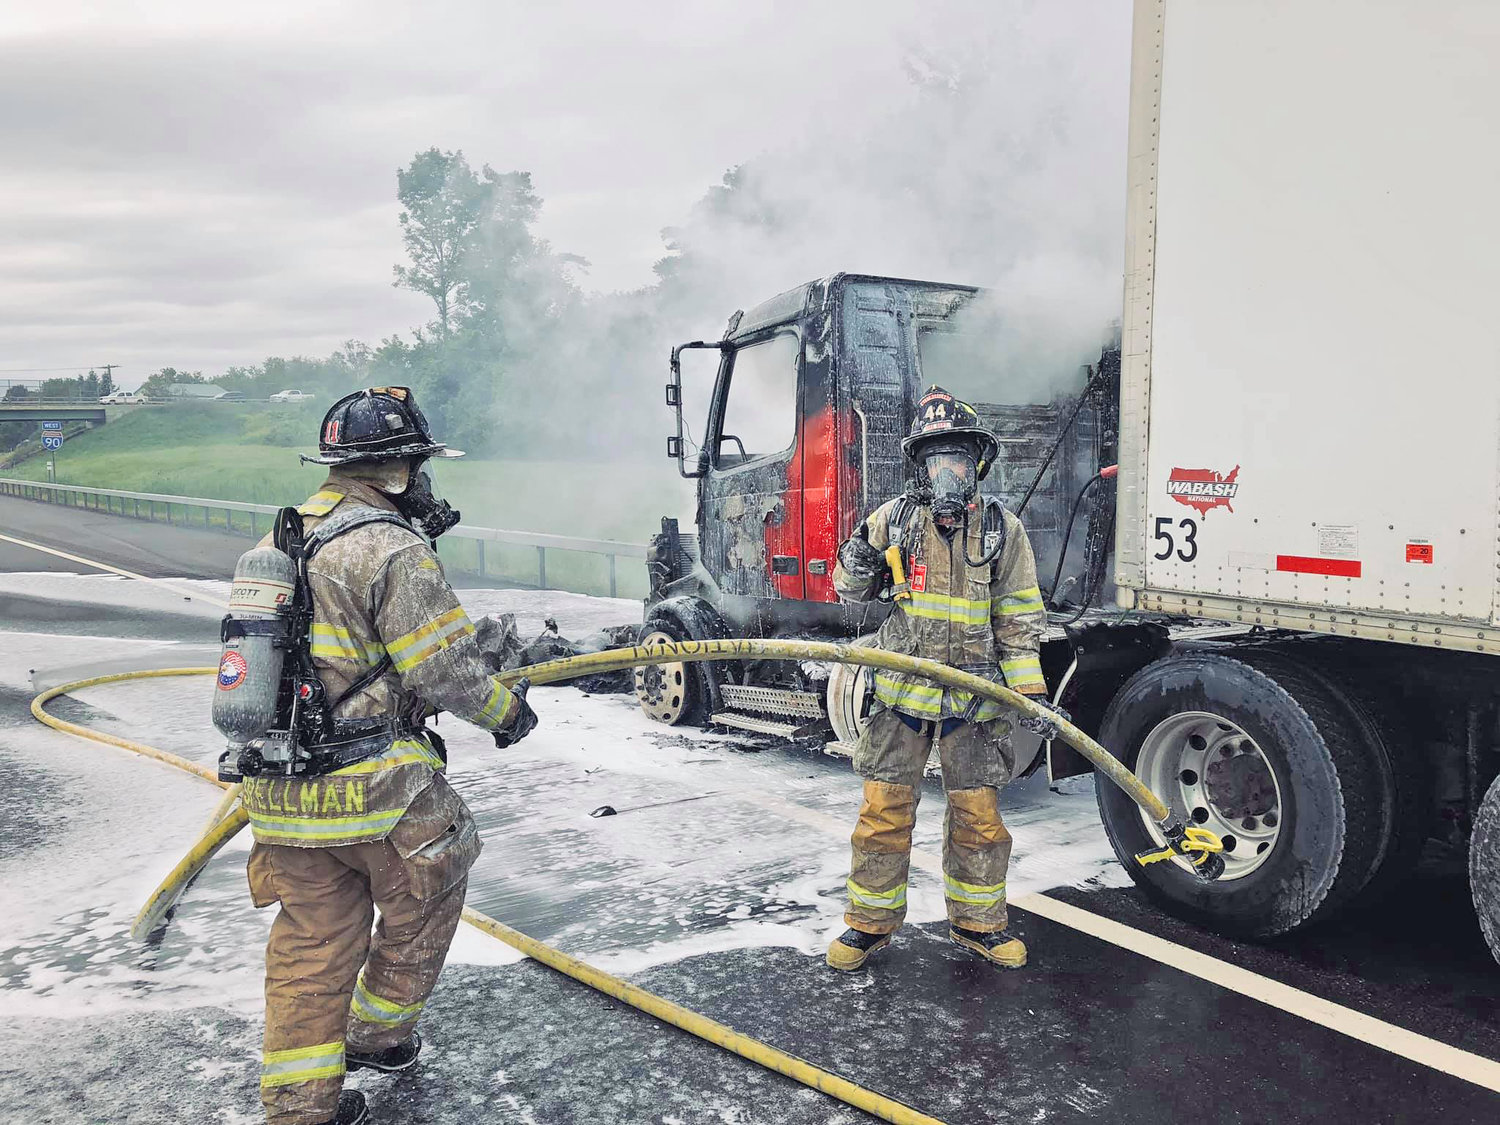 THRUWAY FIREFIGHT — Westmoreland firefighters use foam to knock down a tractor trailer cab fire on the Thruway near Route 233 Tuesday, Aug. 27. Fire officials said the driver escaped without injury.